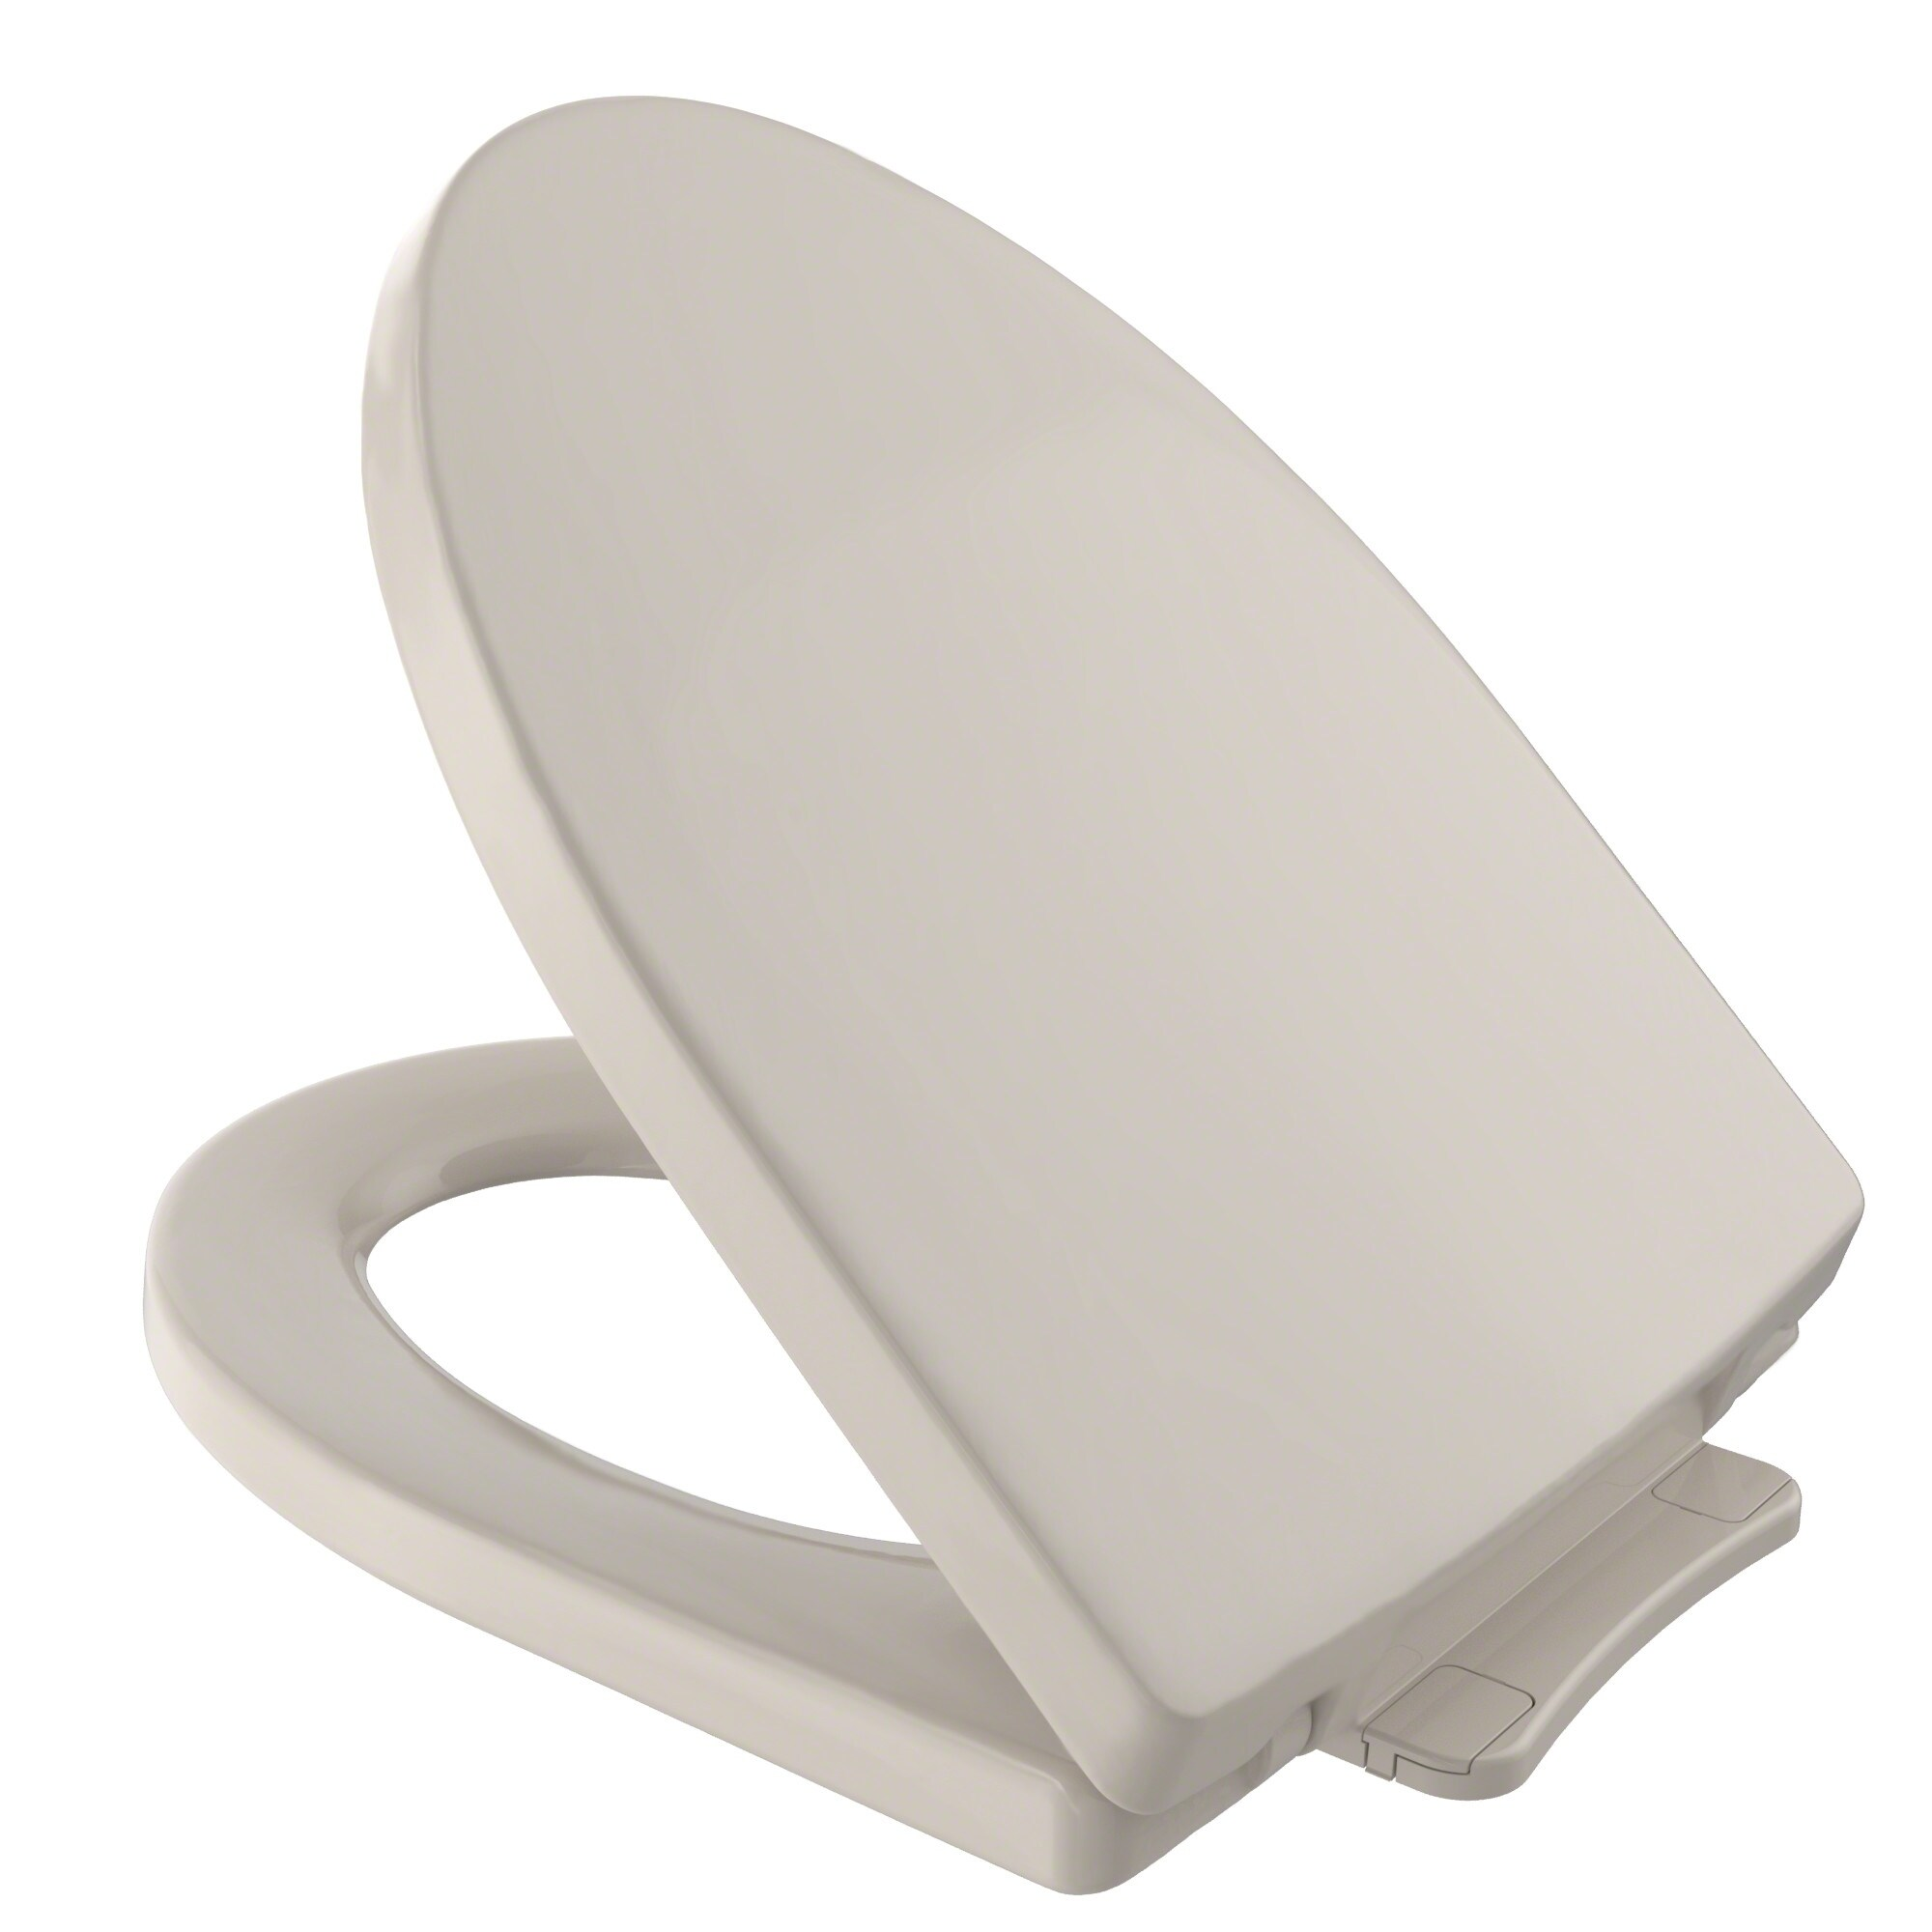 Pleasant Toto Soiree Softclose Non Slamming Slow Close Elongated Toilet Seat And Lid Bone Ss21403 Gmtry Best Dining Table And Chair Ideas Images Gmtryco